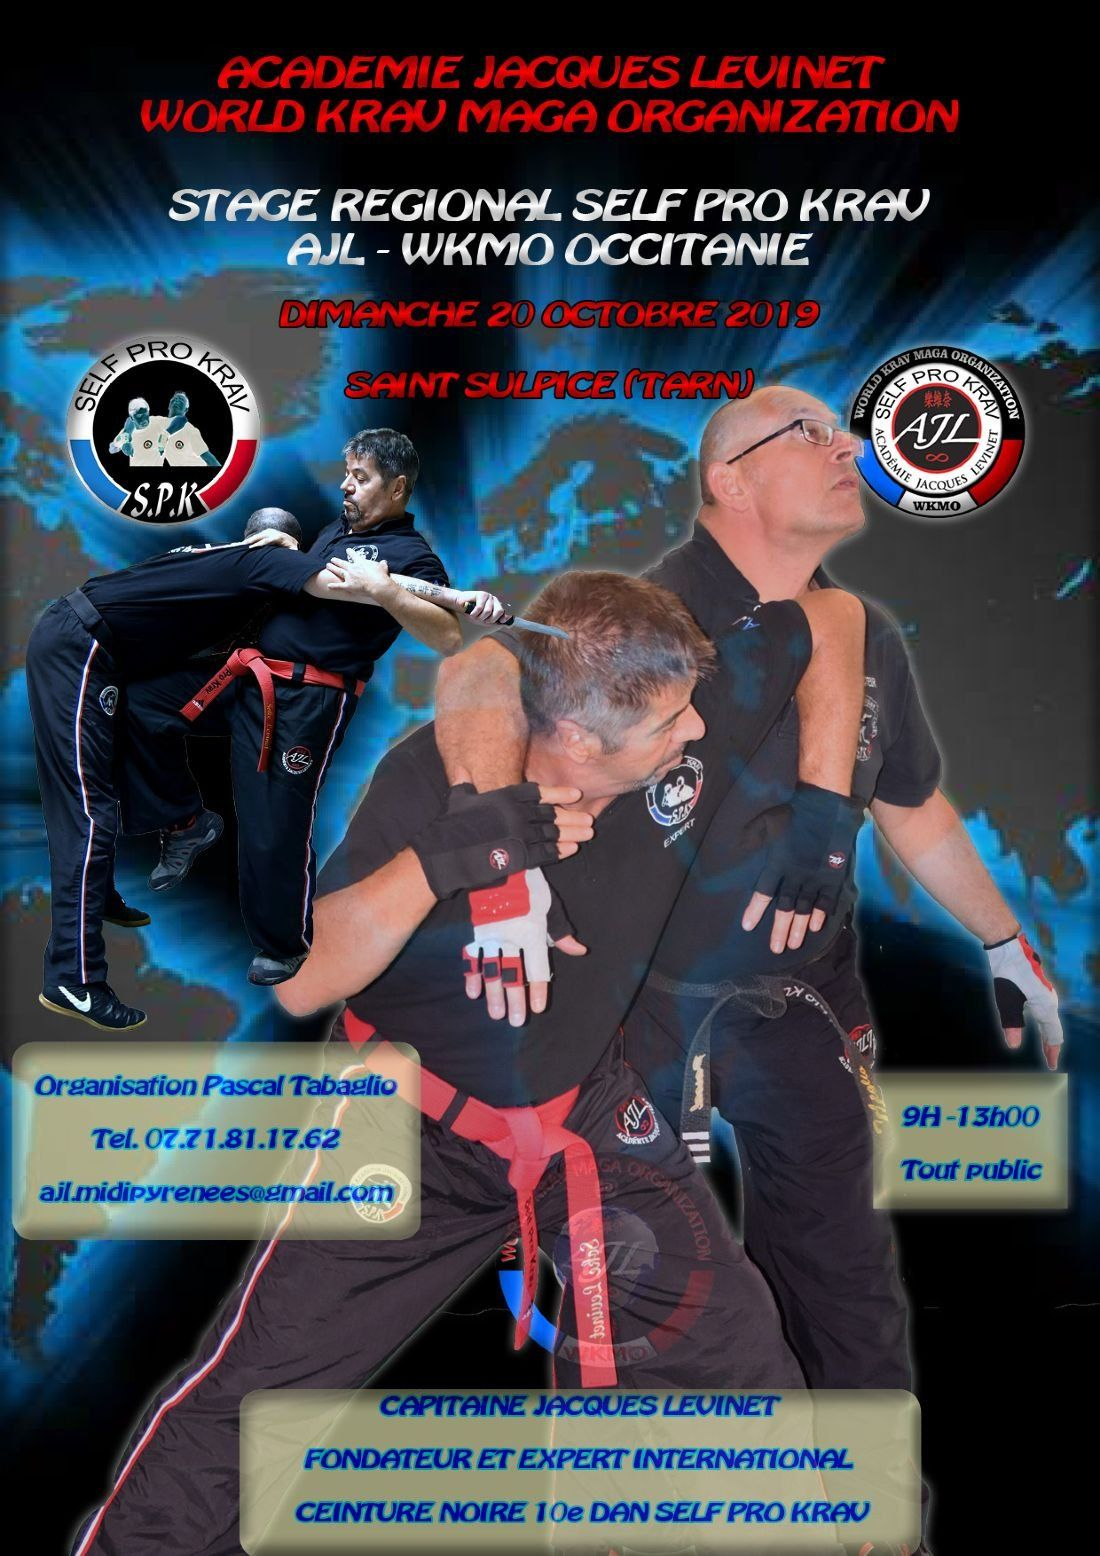 STAGE NATIONAL KRAVMAGA SPK OCCITANIE (TARN)